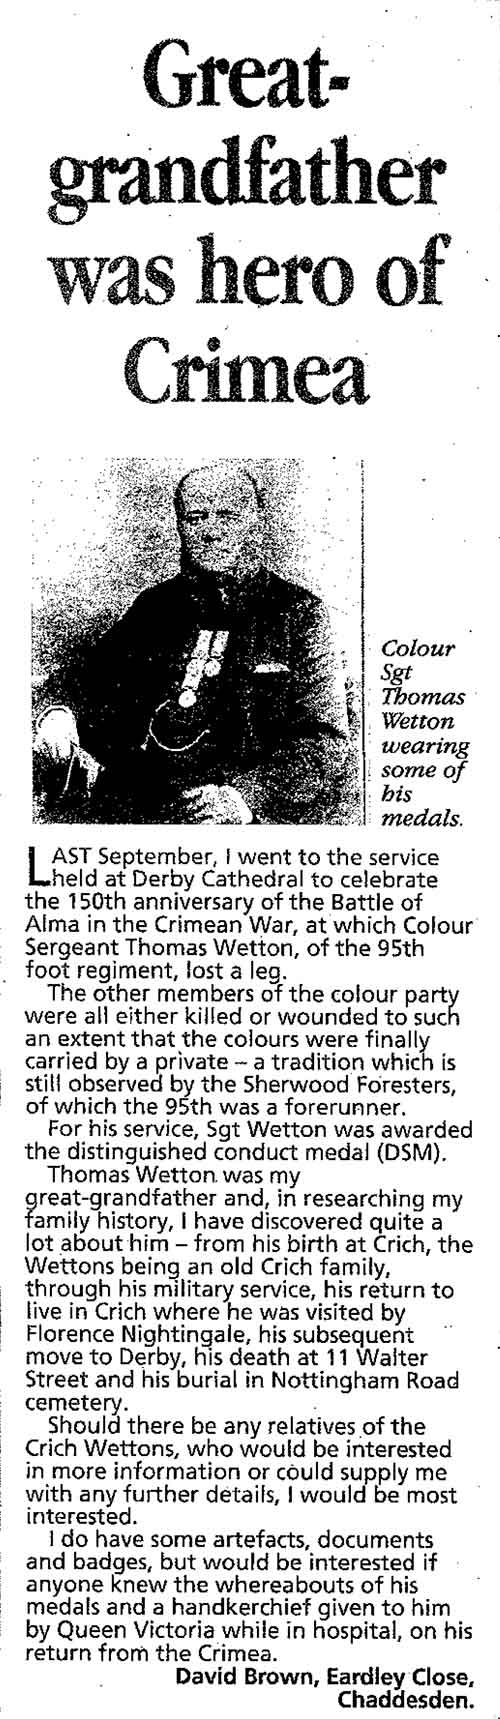 newspaper article on Thomas Wetton